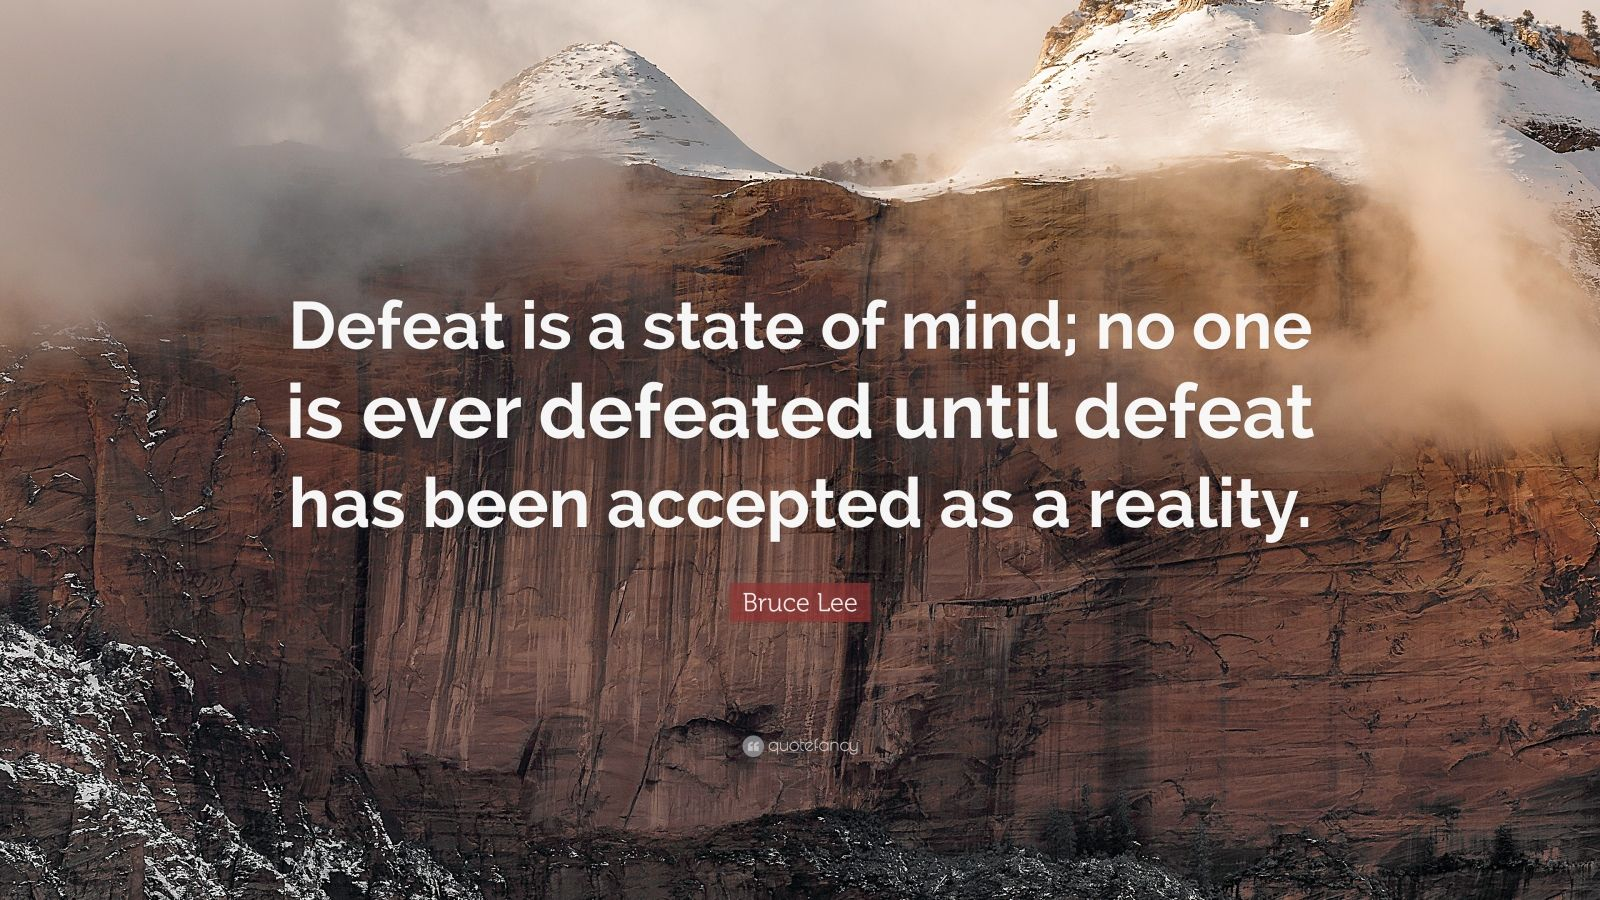 Mahatma Gandhi Wallpaper With Quotes Bruce Lee Quote Defeat Is A State Of Mind No One Is